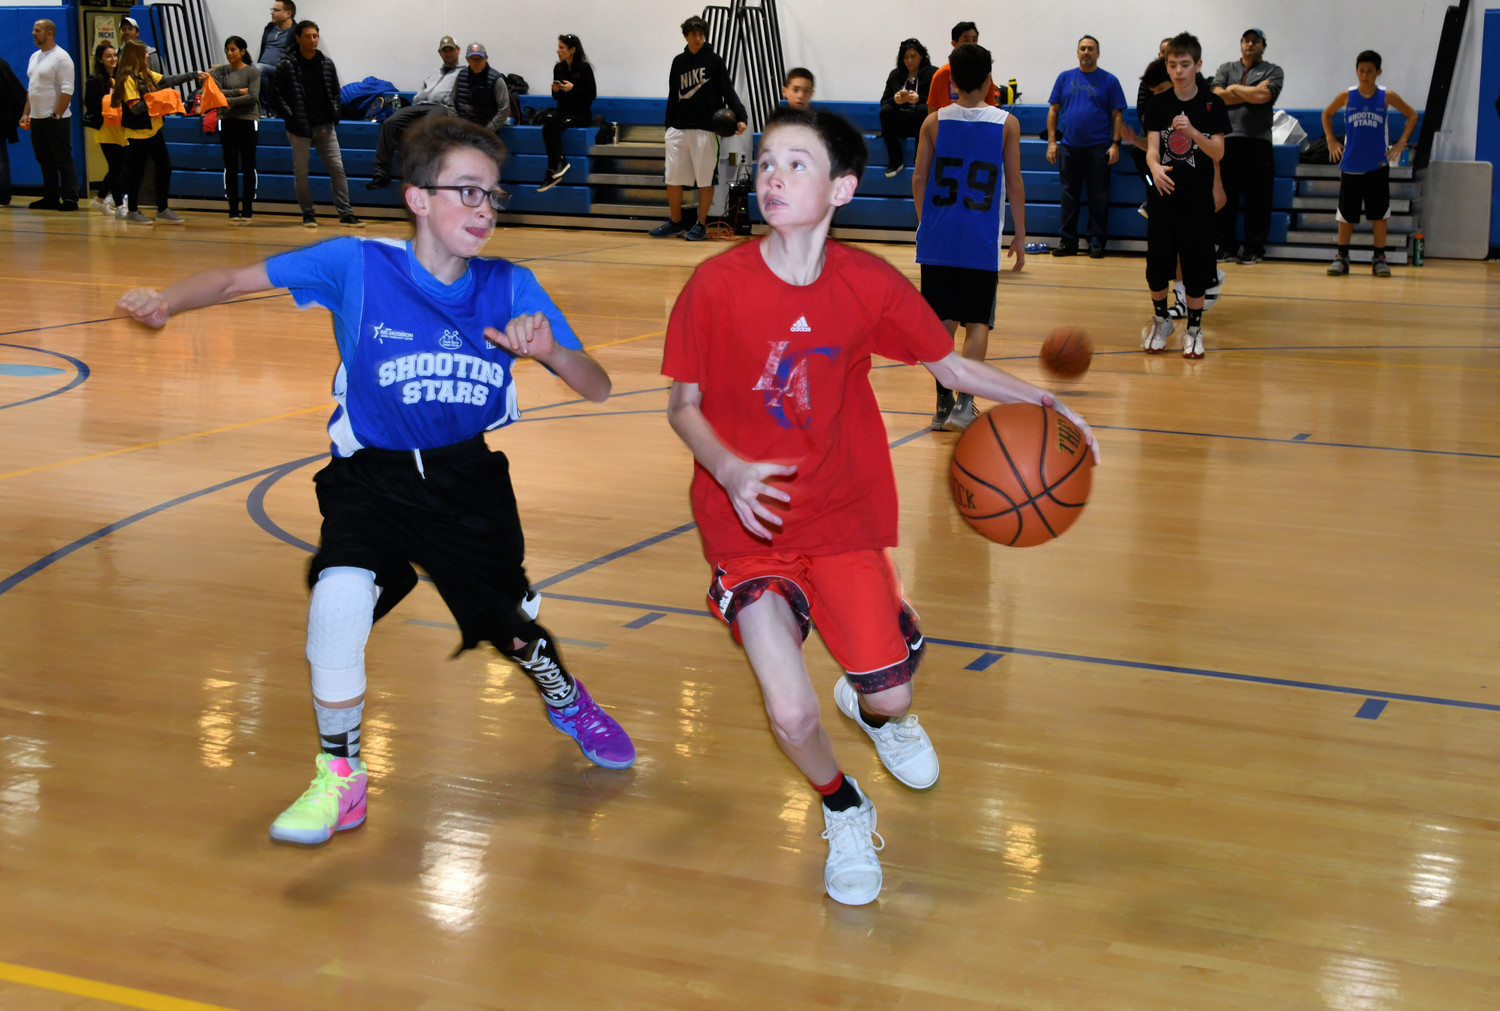 The fundraiser features a three-on-three basketball tournament with three age divisions — middle school, high school and adult.